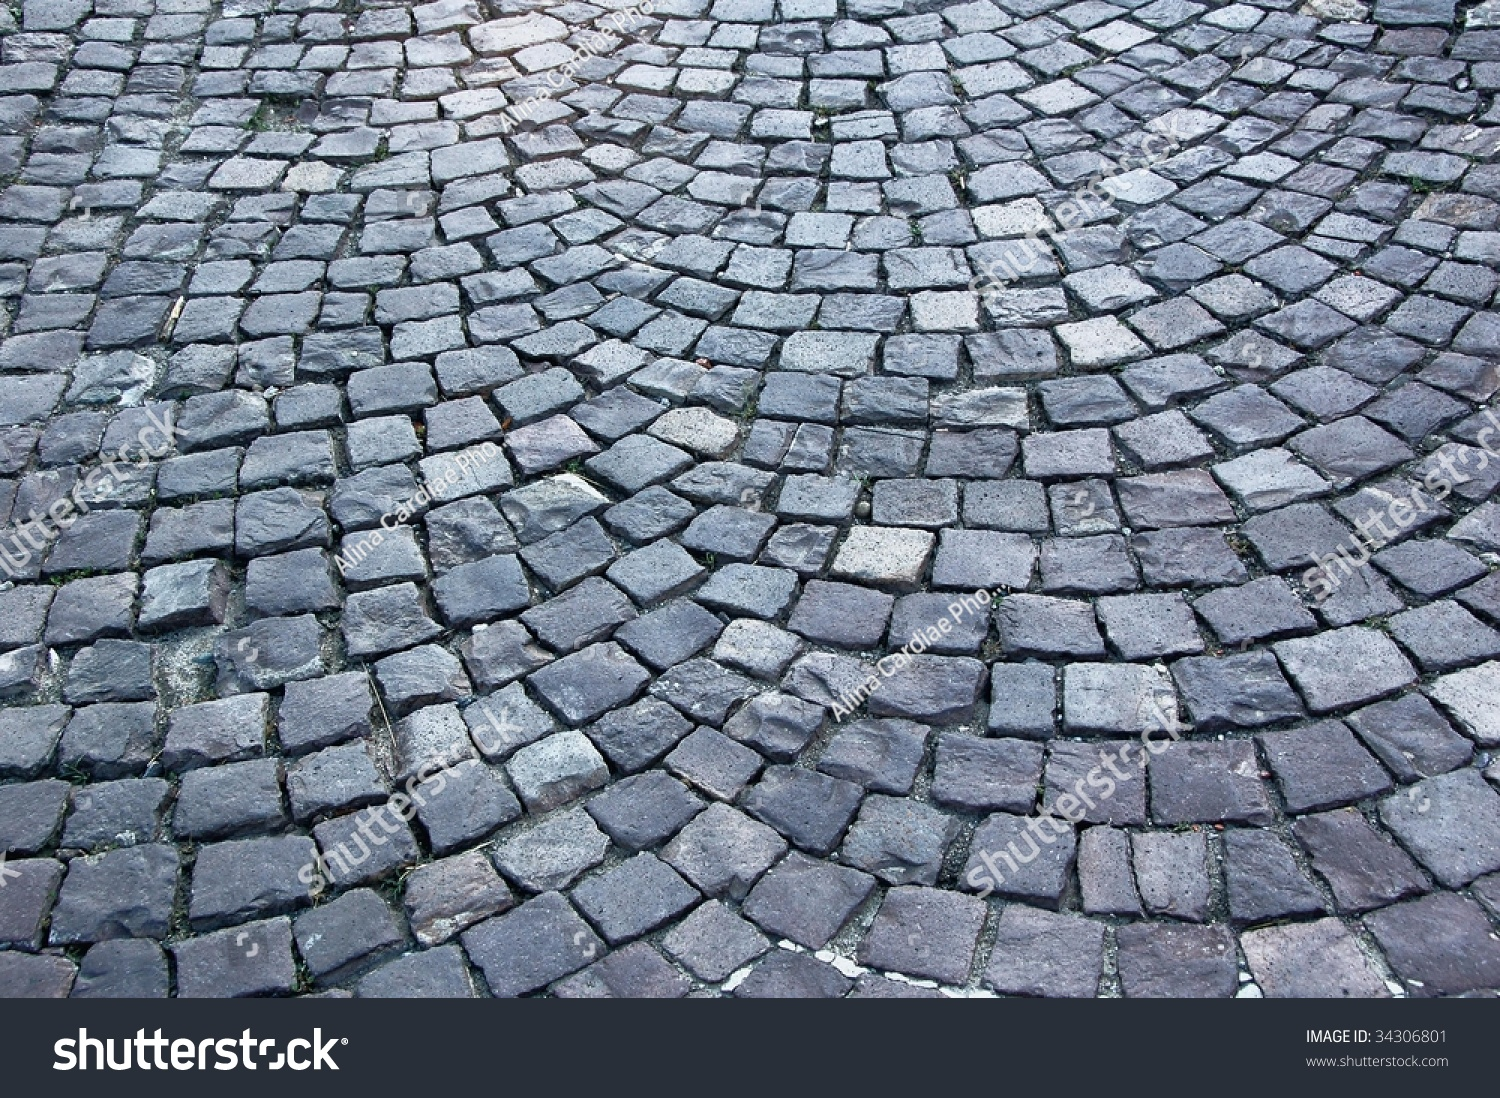 Cobblestone Pavement Paving Stock Photo 34306801